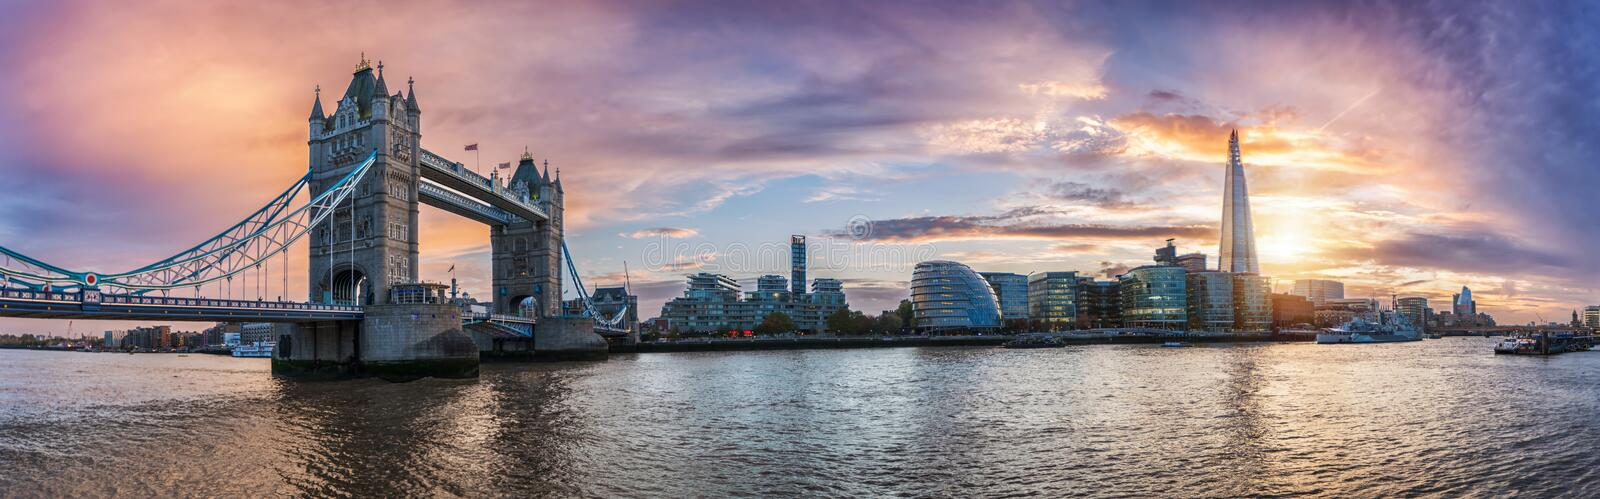 Download Panorama From The Tower Bridge To The Tower Of London Stock Photo - Image of european, exterior: 103705412